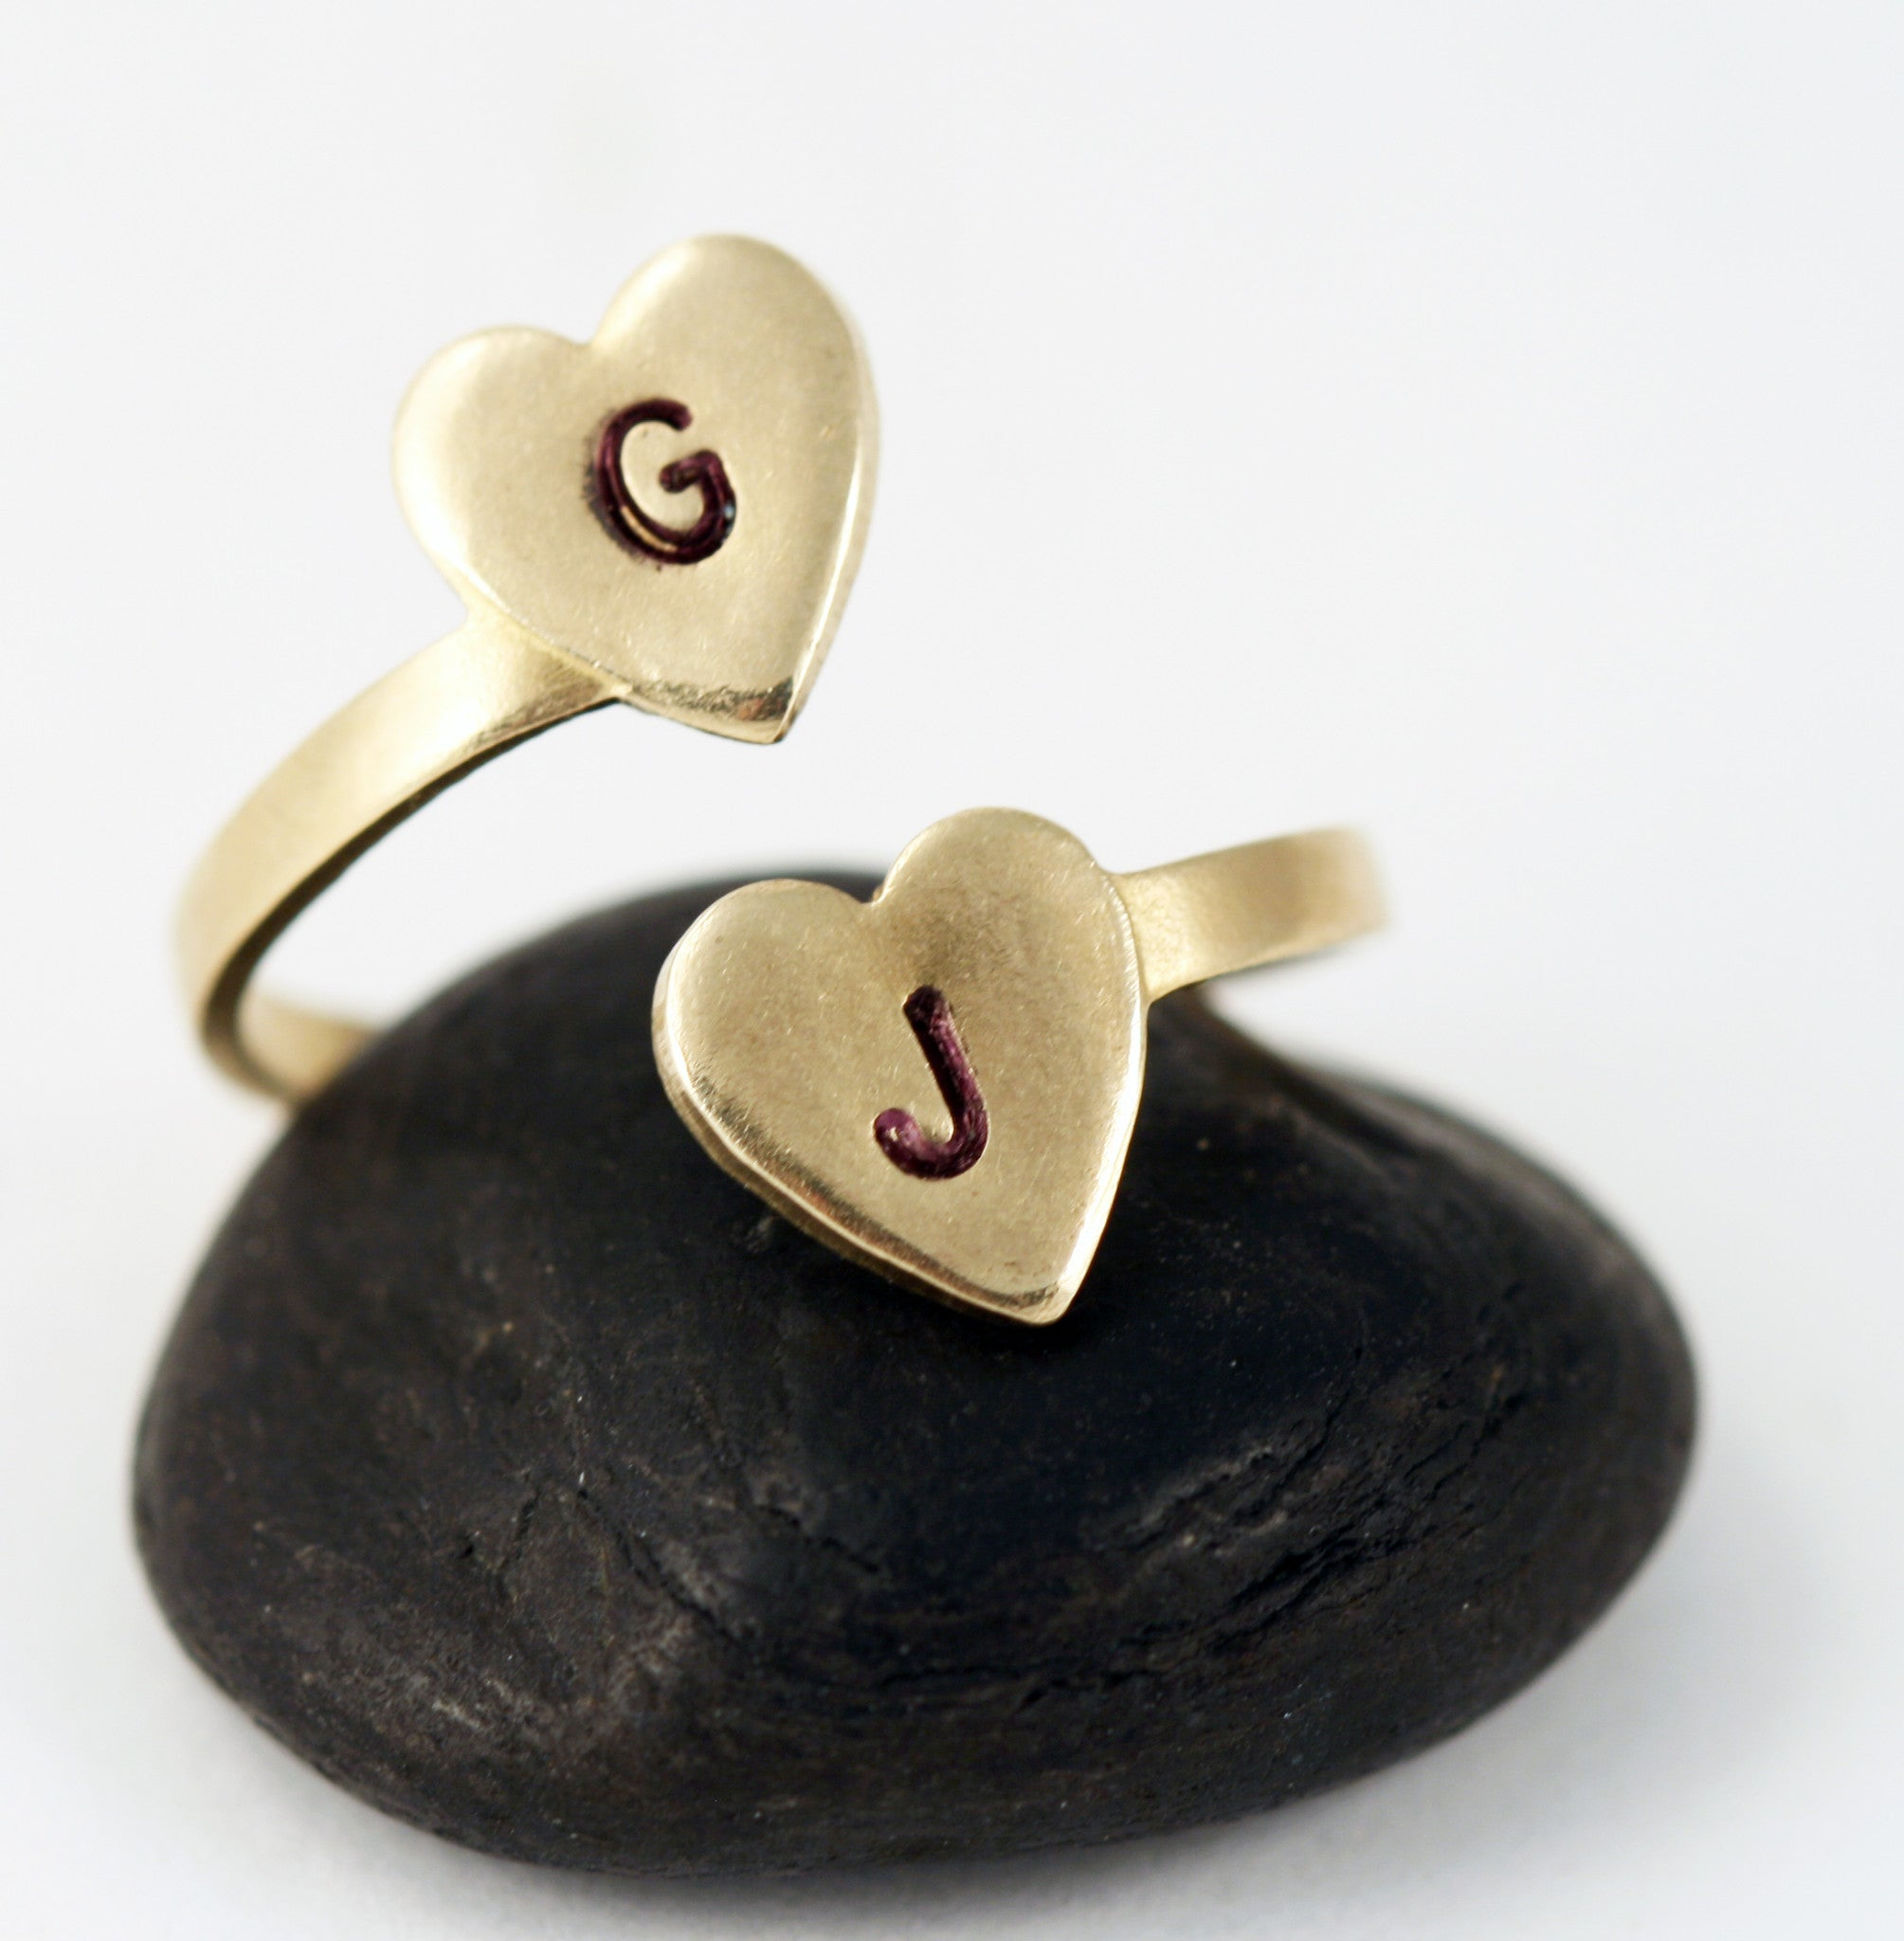 Personalized Two Heart Initial Ring - Adjustable Ring